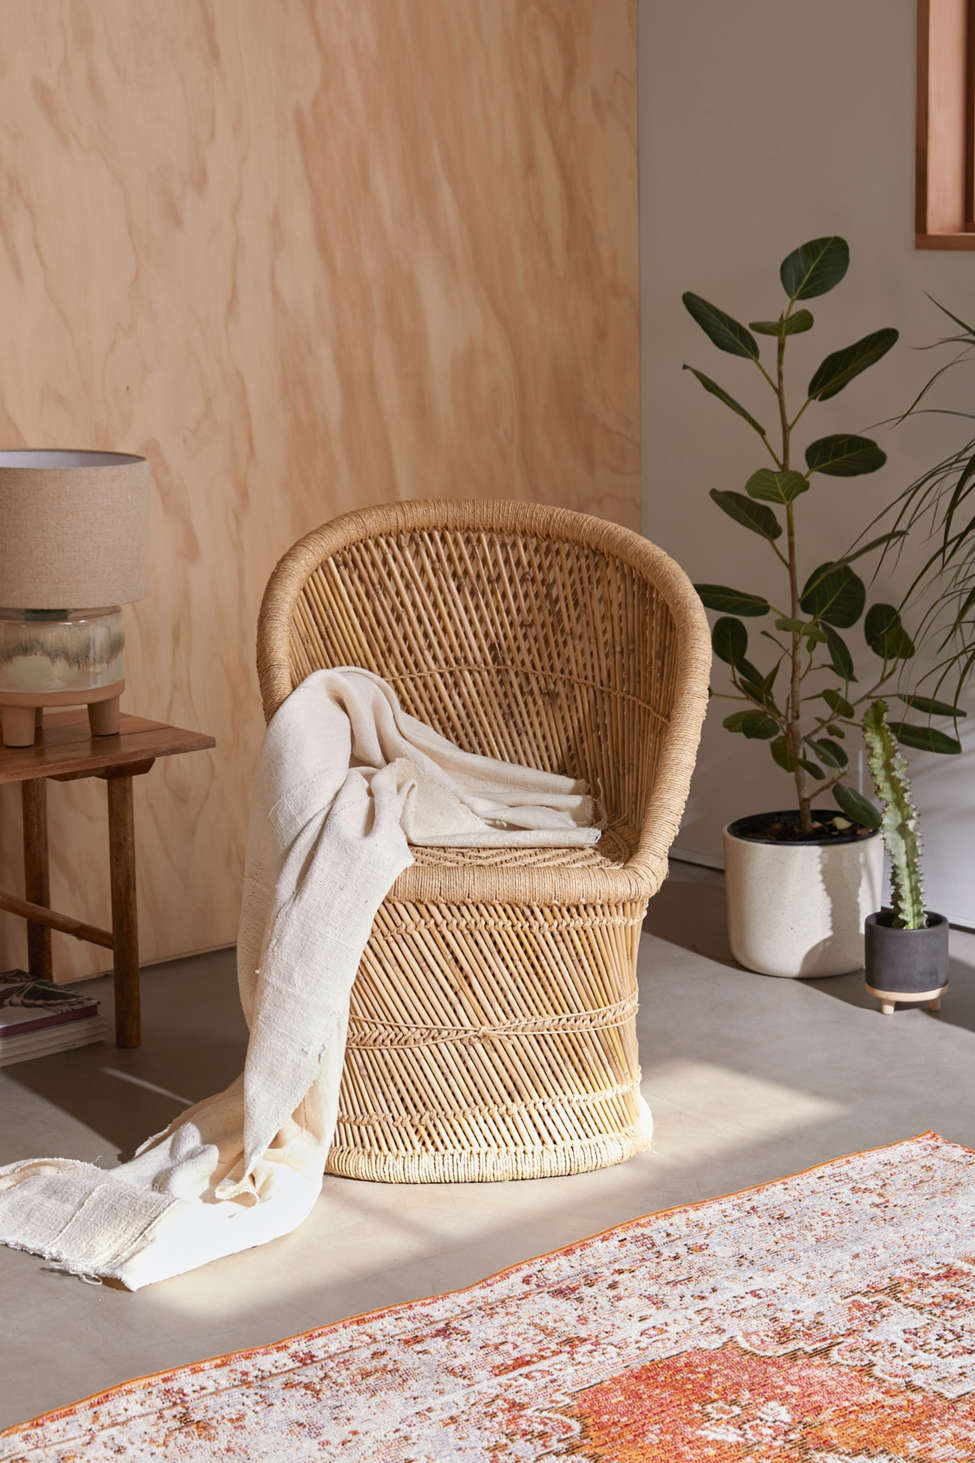 Slide View: 1: Willow Wicker Chair